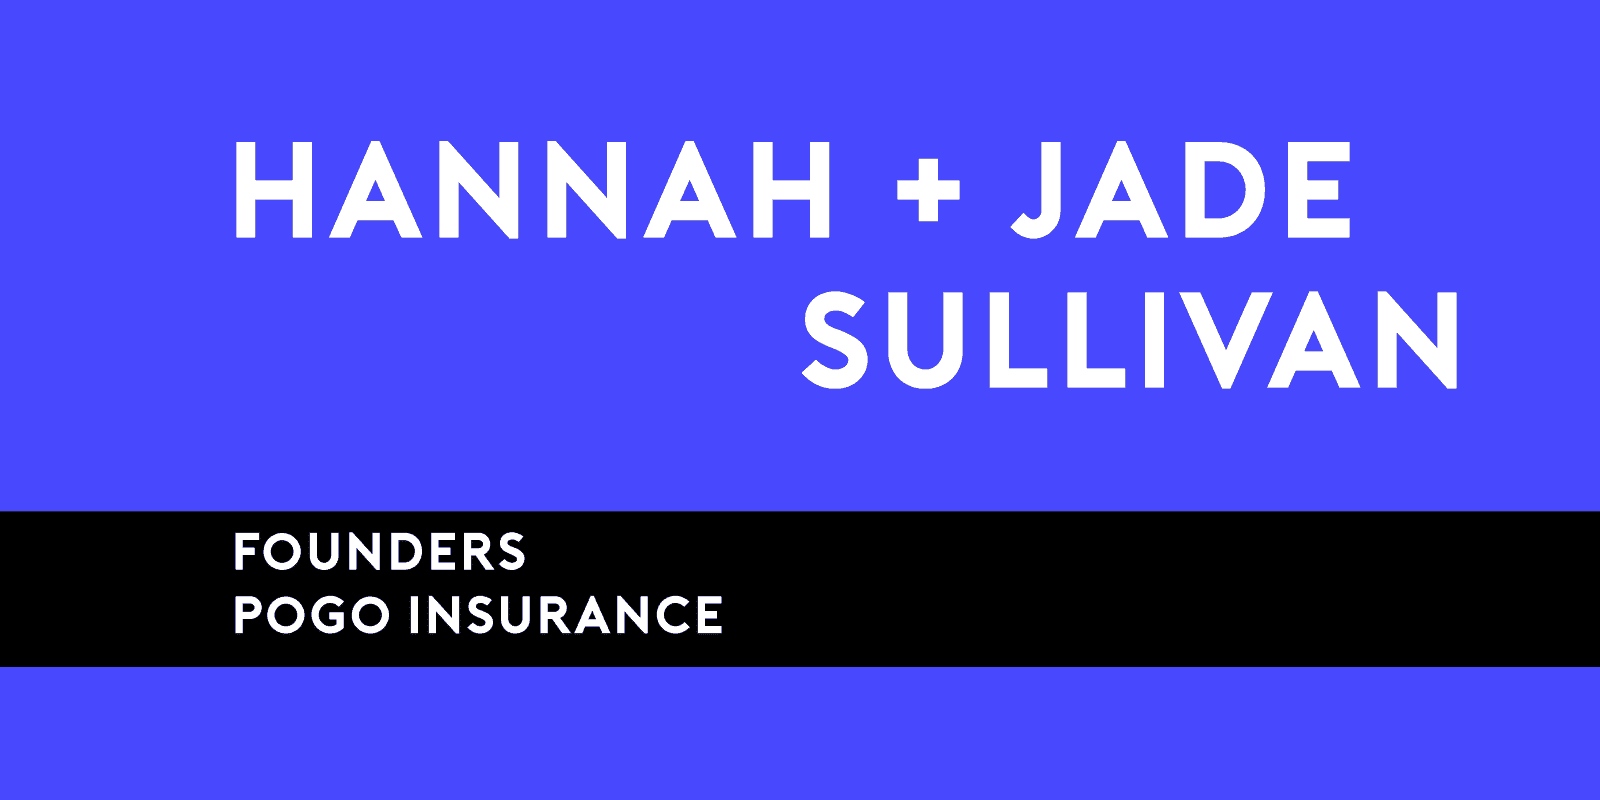 Jade and Hannah Sullivan of POGO Insurance is LegalNet Inc's Thursday Thought Leader